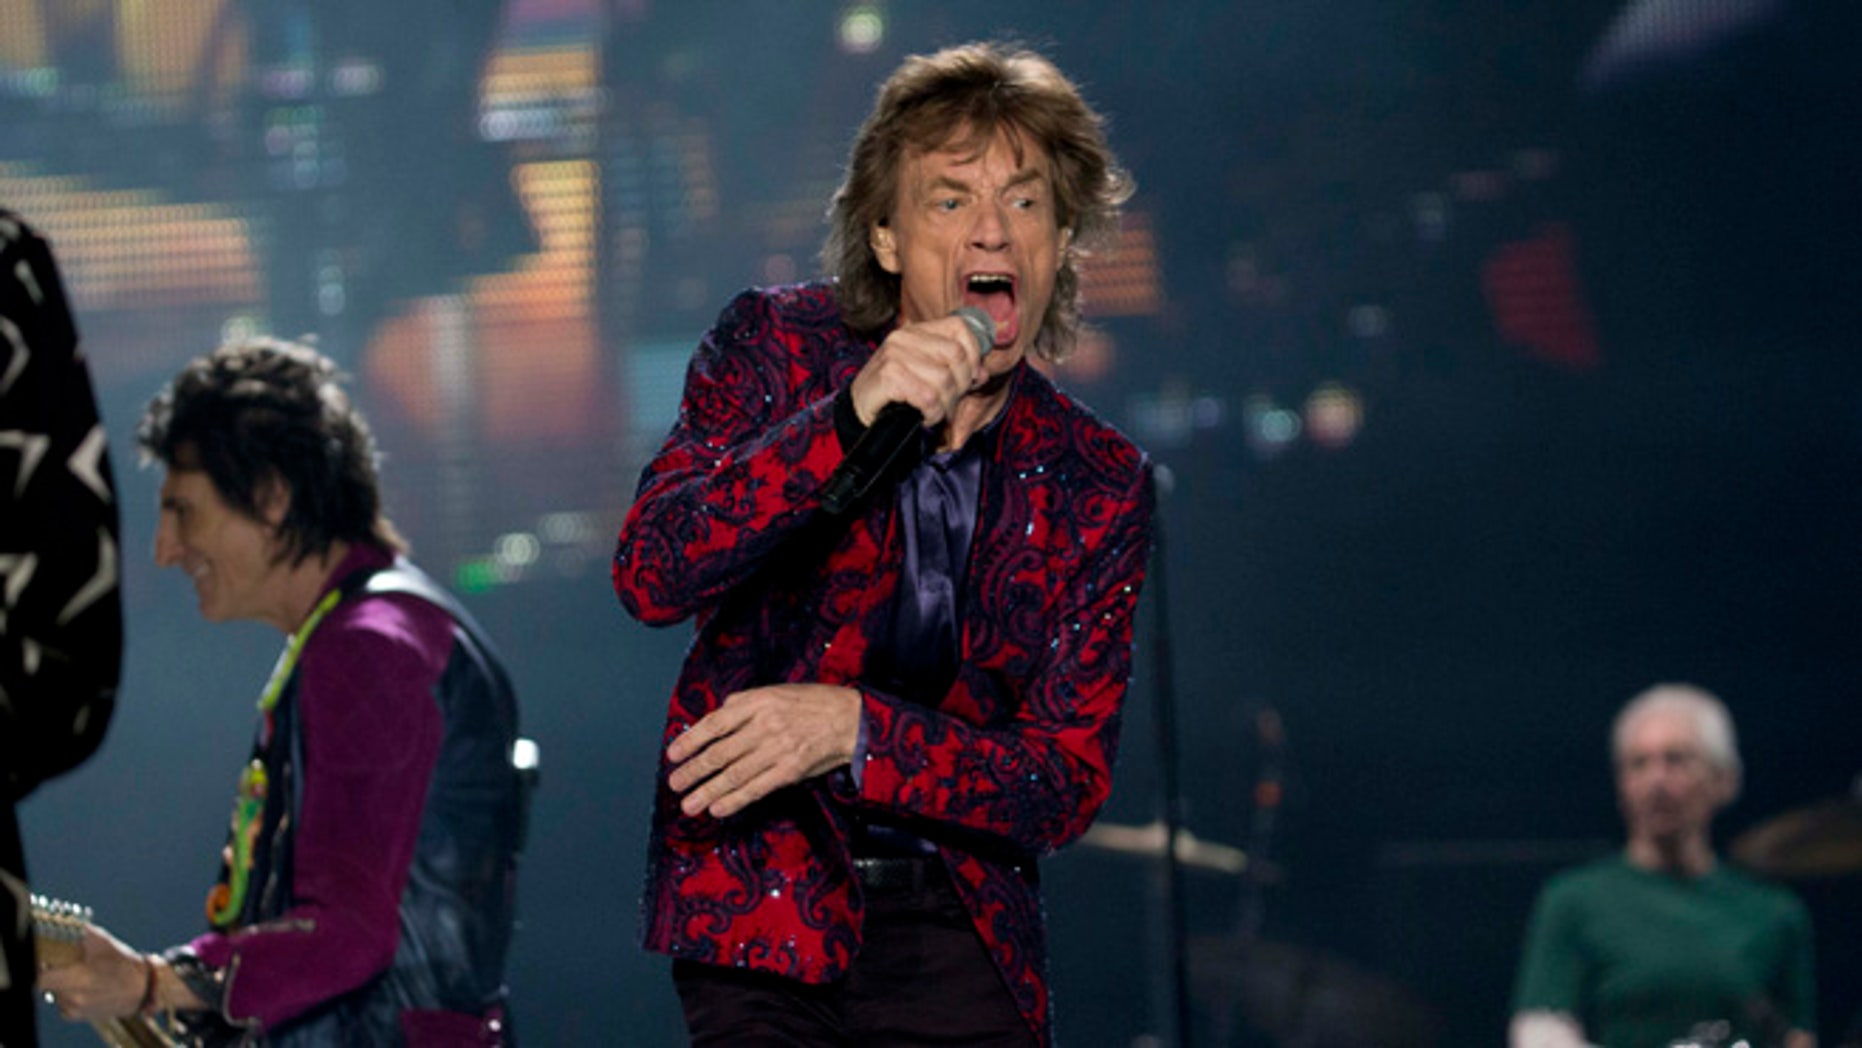 The Rolling Stones' Mick Jagger performs during the band's Ole Tour at Foro Sol in Mexico City, Monday, March 14, 2016. (AP Photo/Eduardo Verdugo)